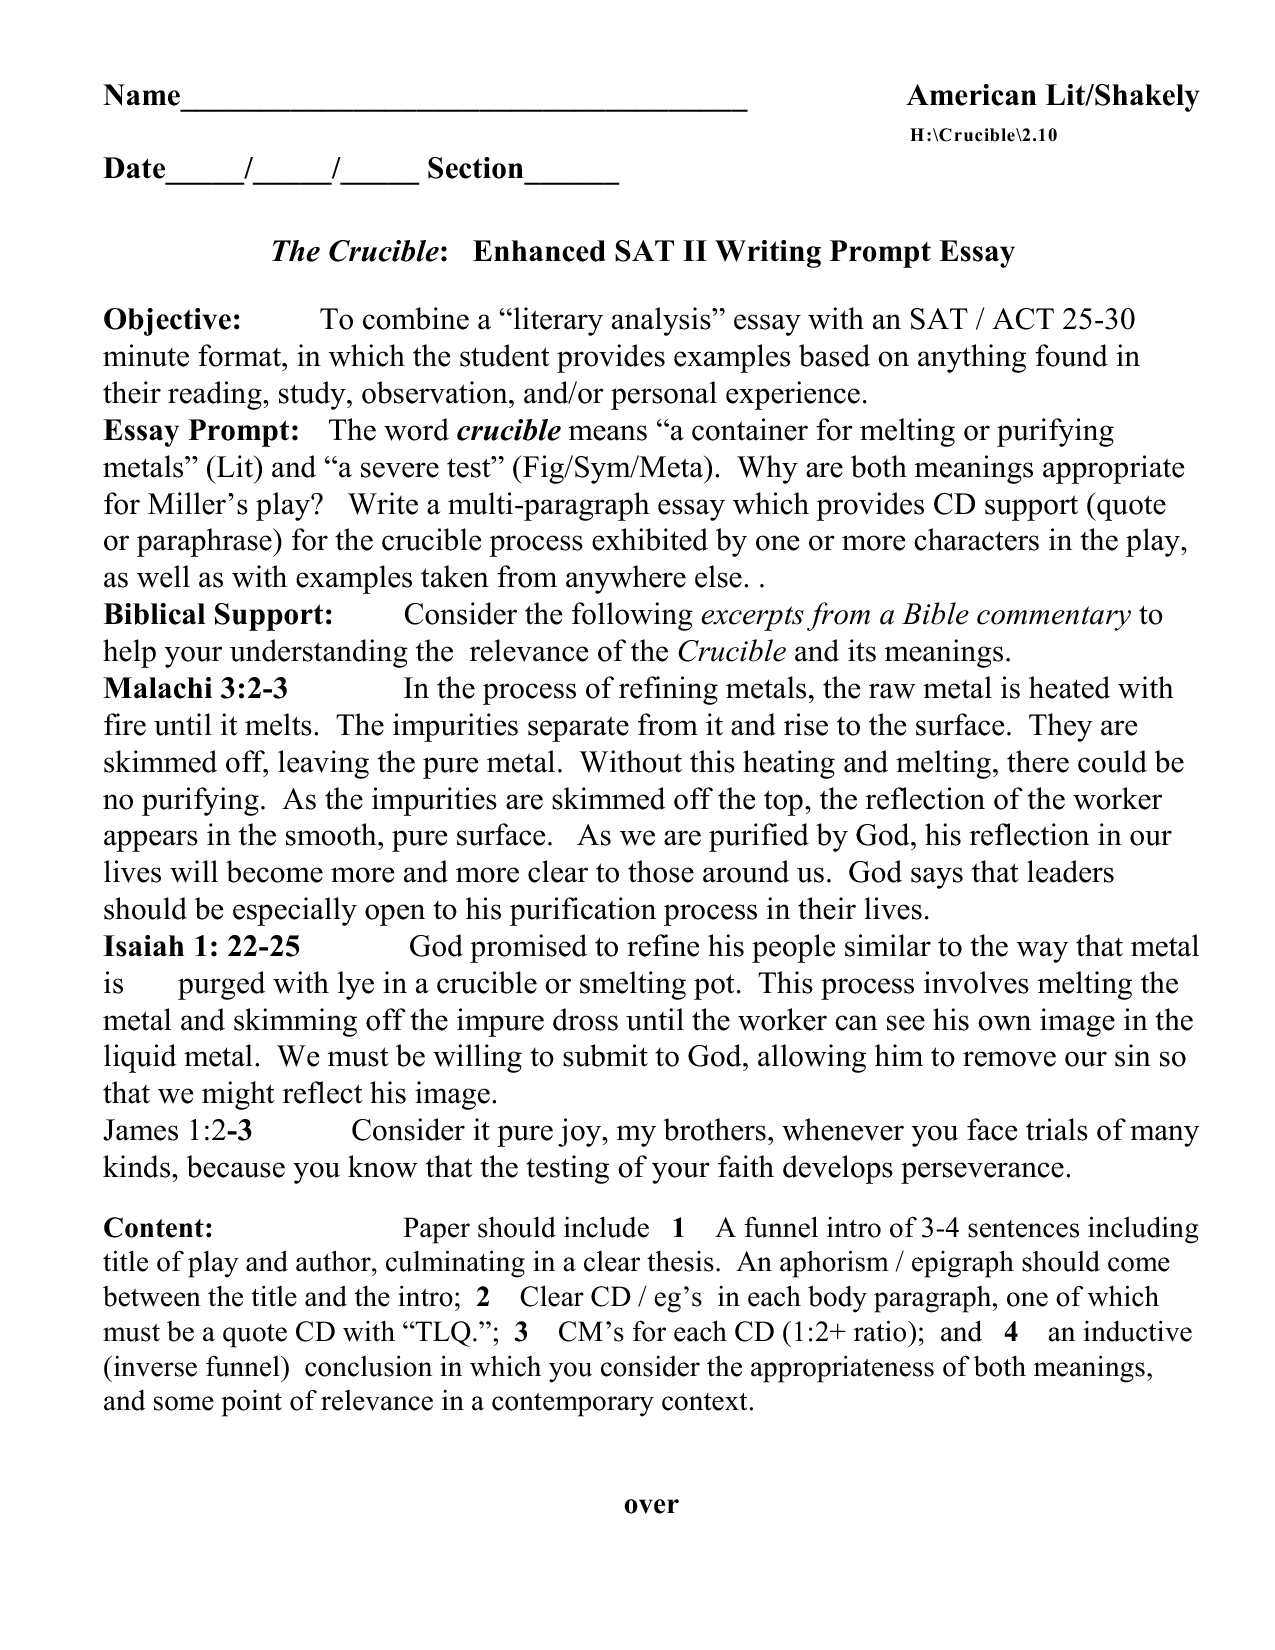 Tips for the sat essay